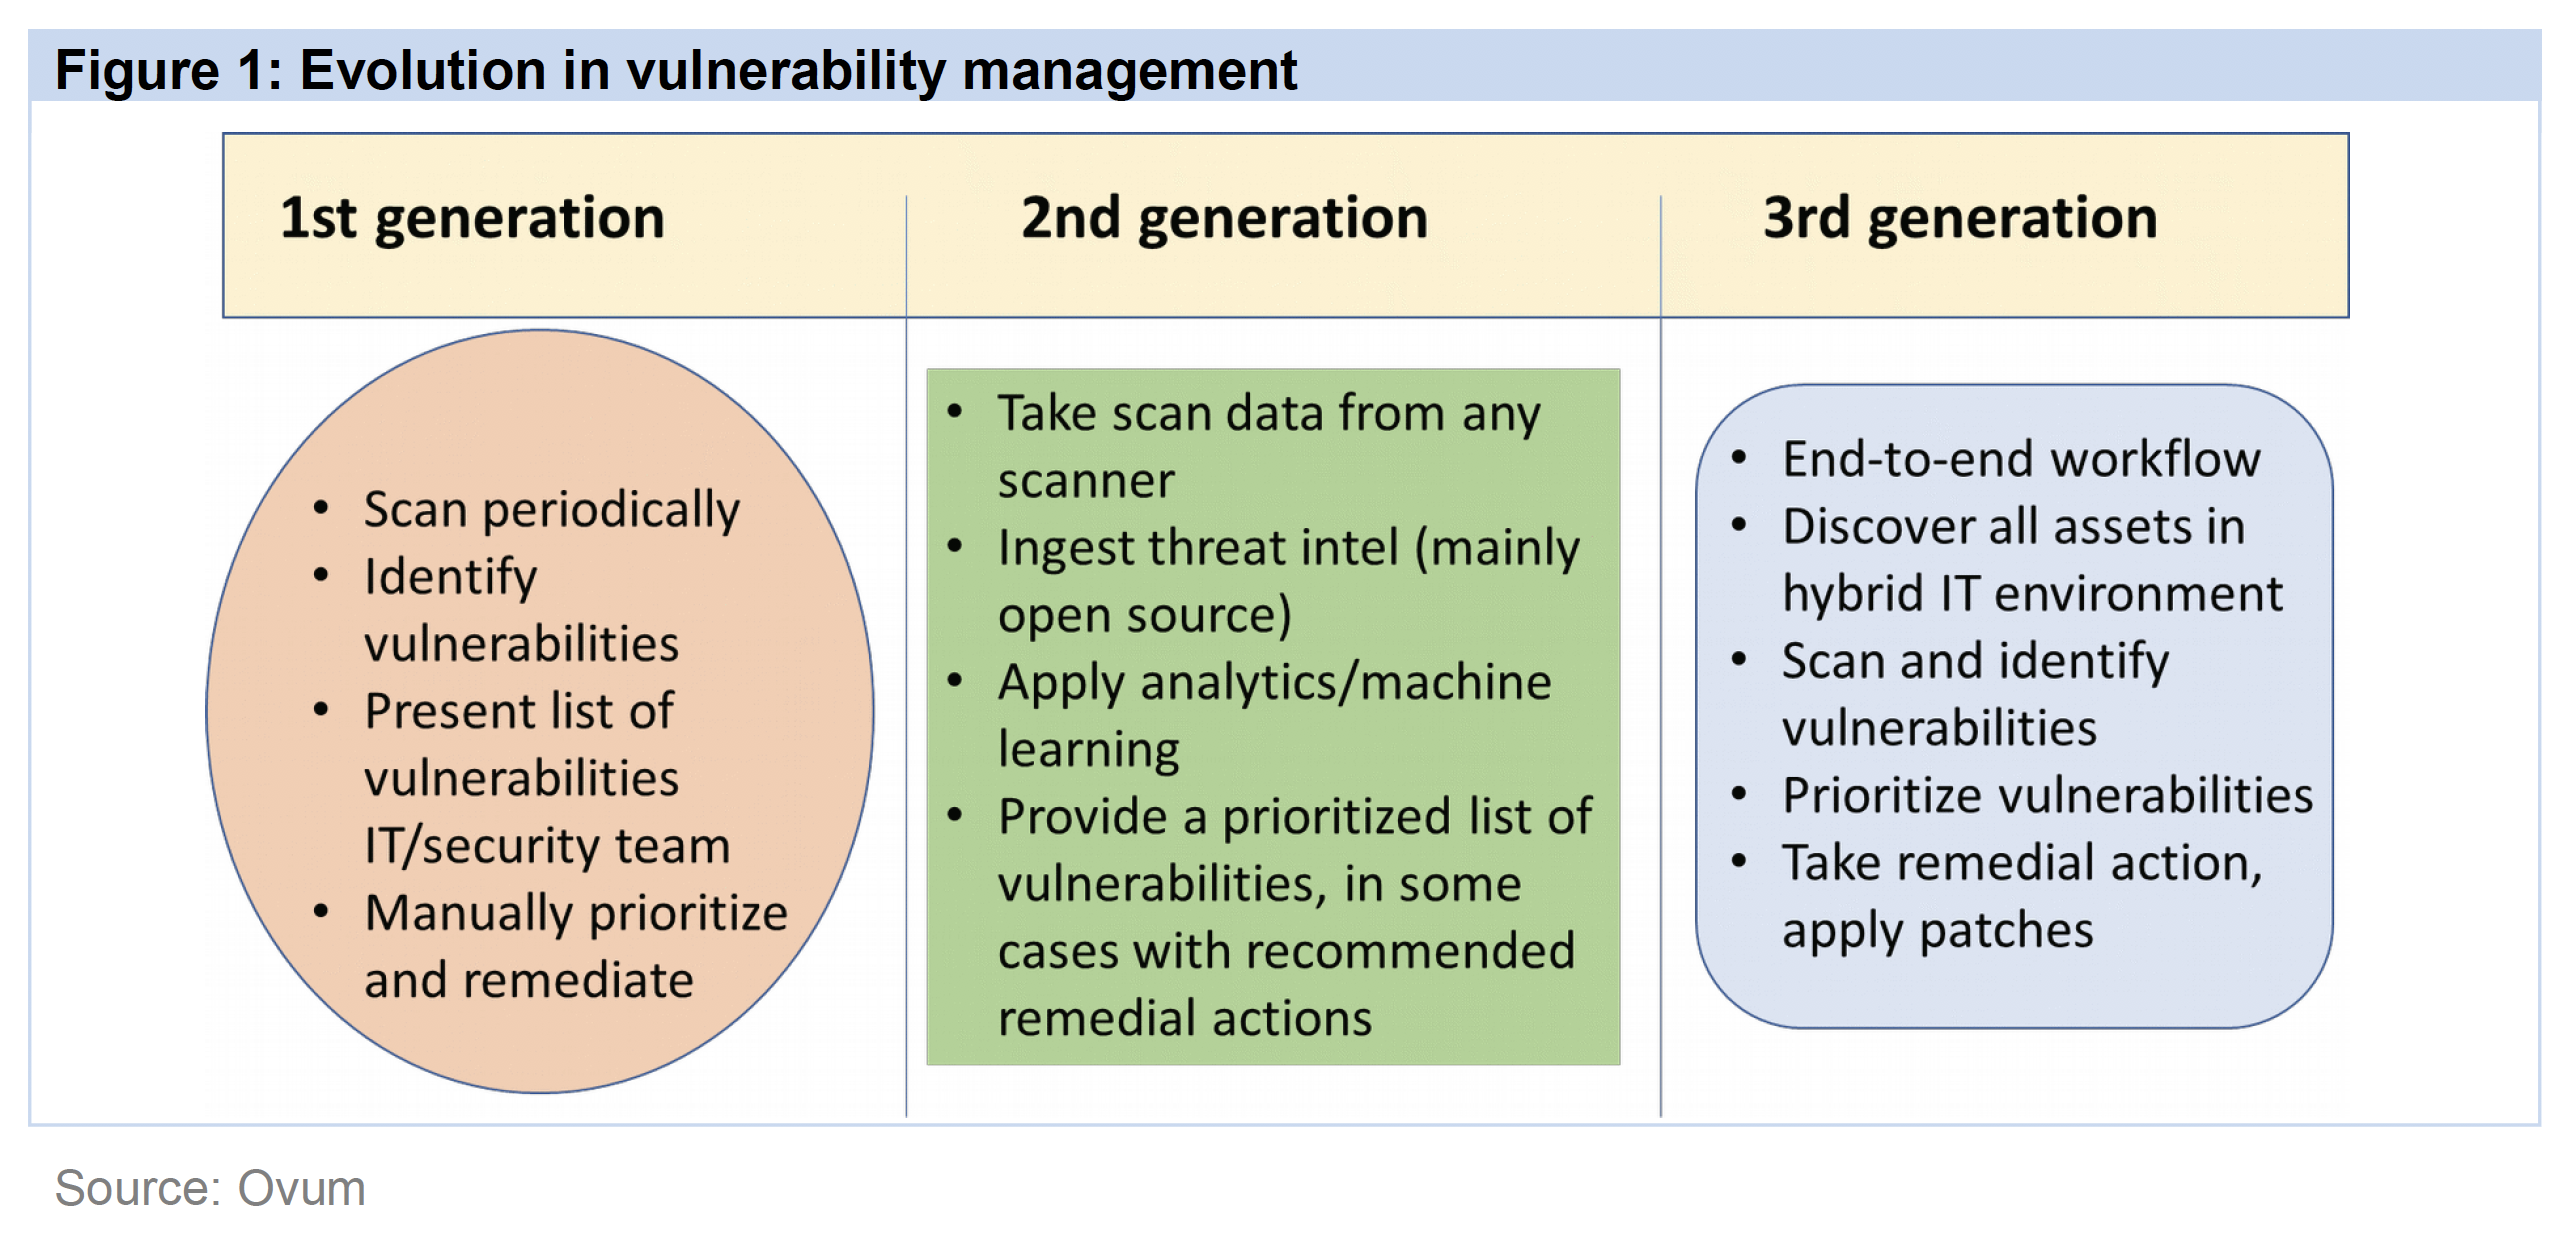 Figure 1: Evolution in Vulnerability Management